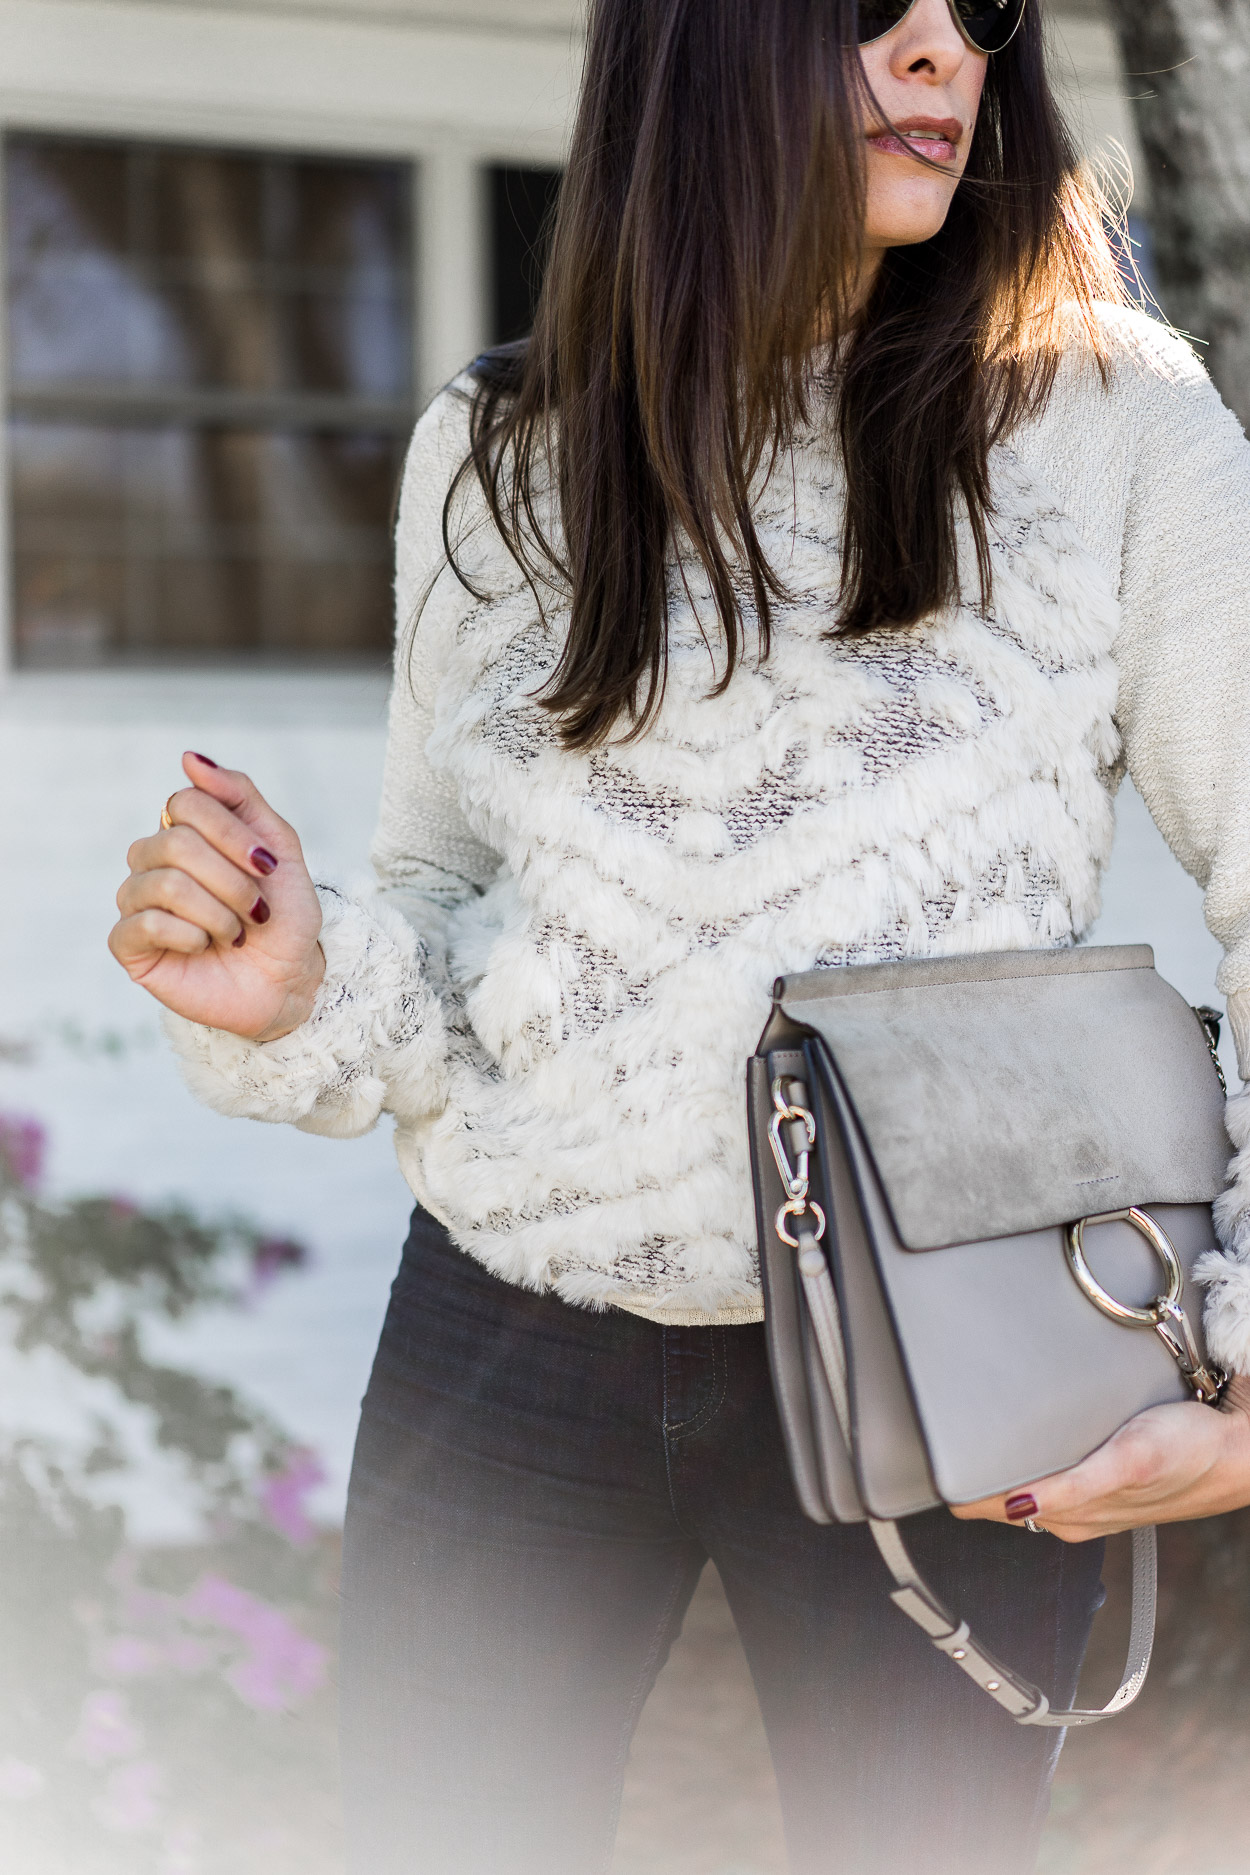 Wear cozy sweaters like this Anthropologie knit like A Glam Lifestyle blogger Amanda